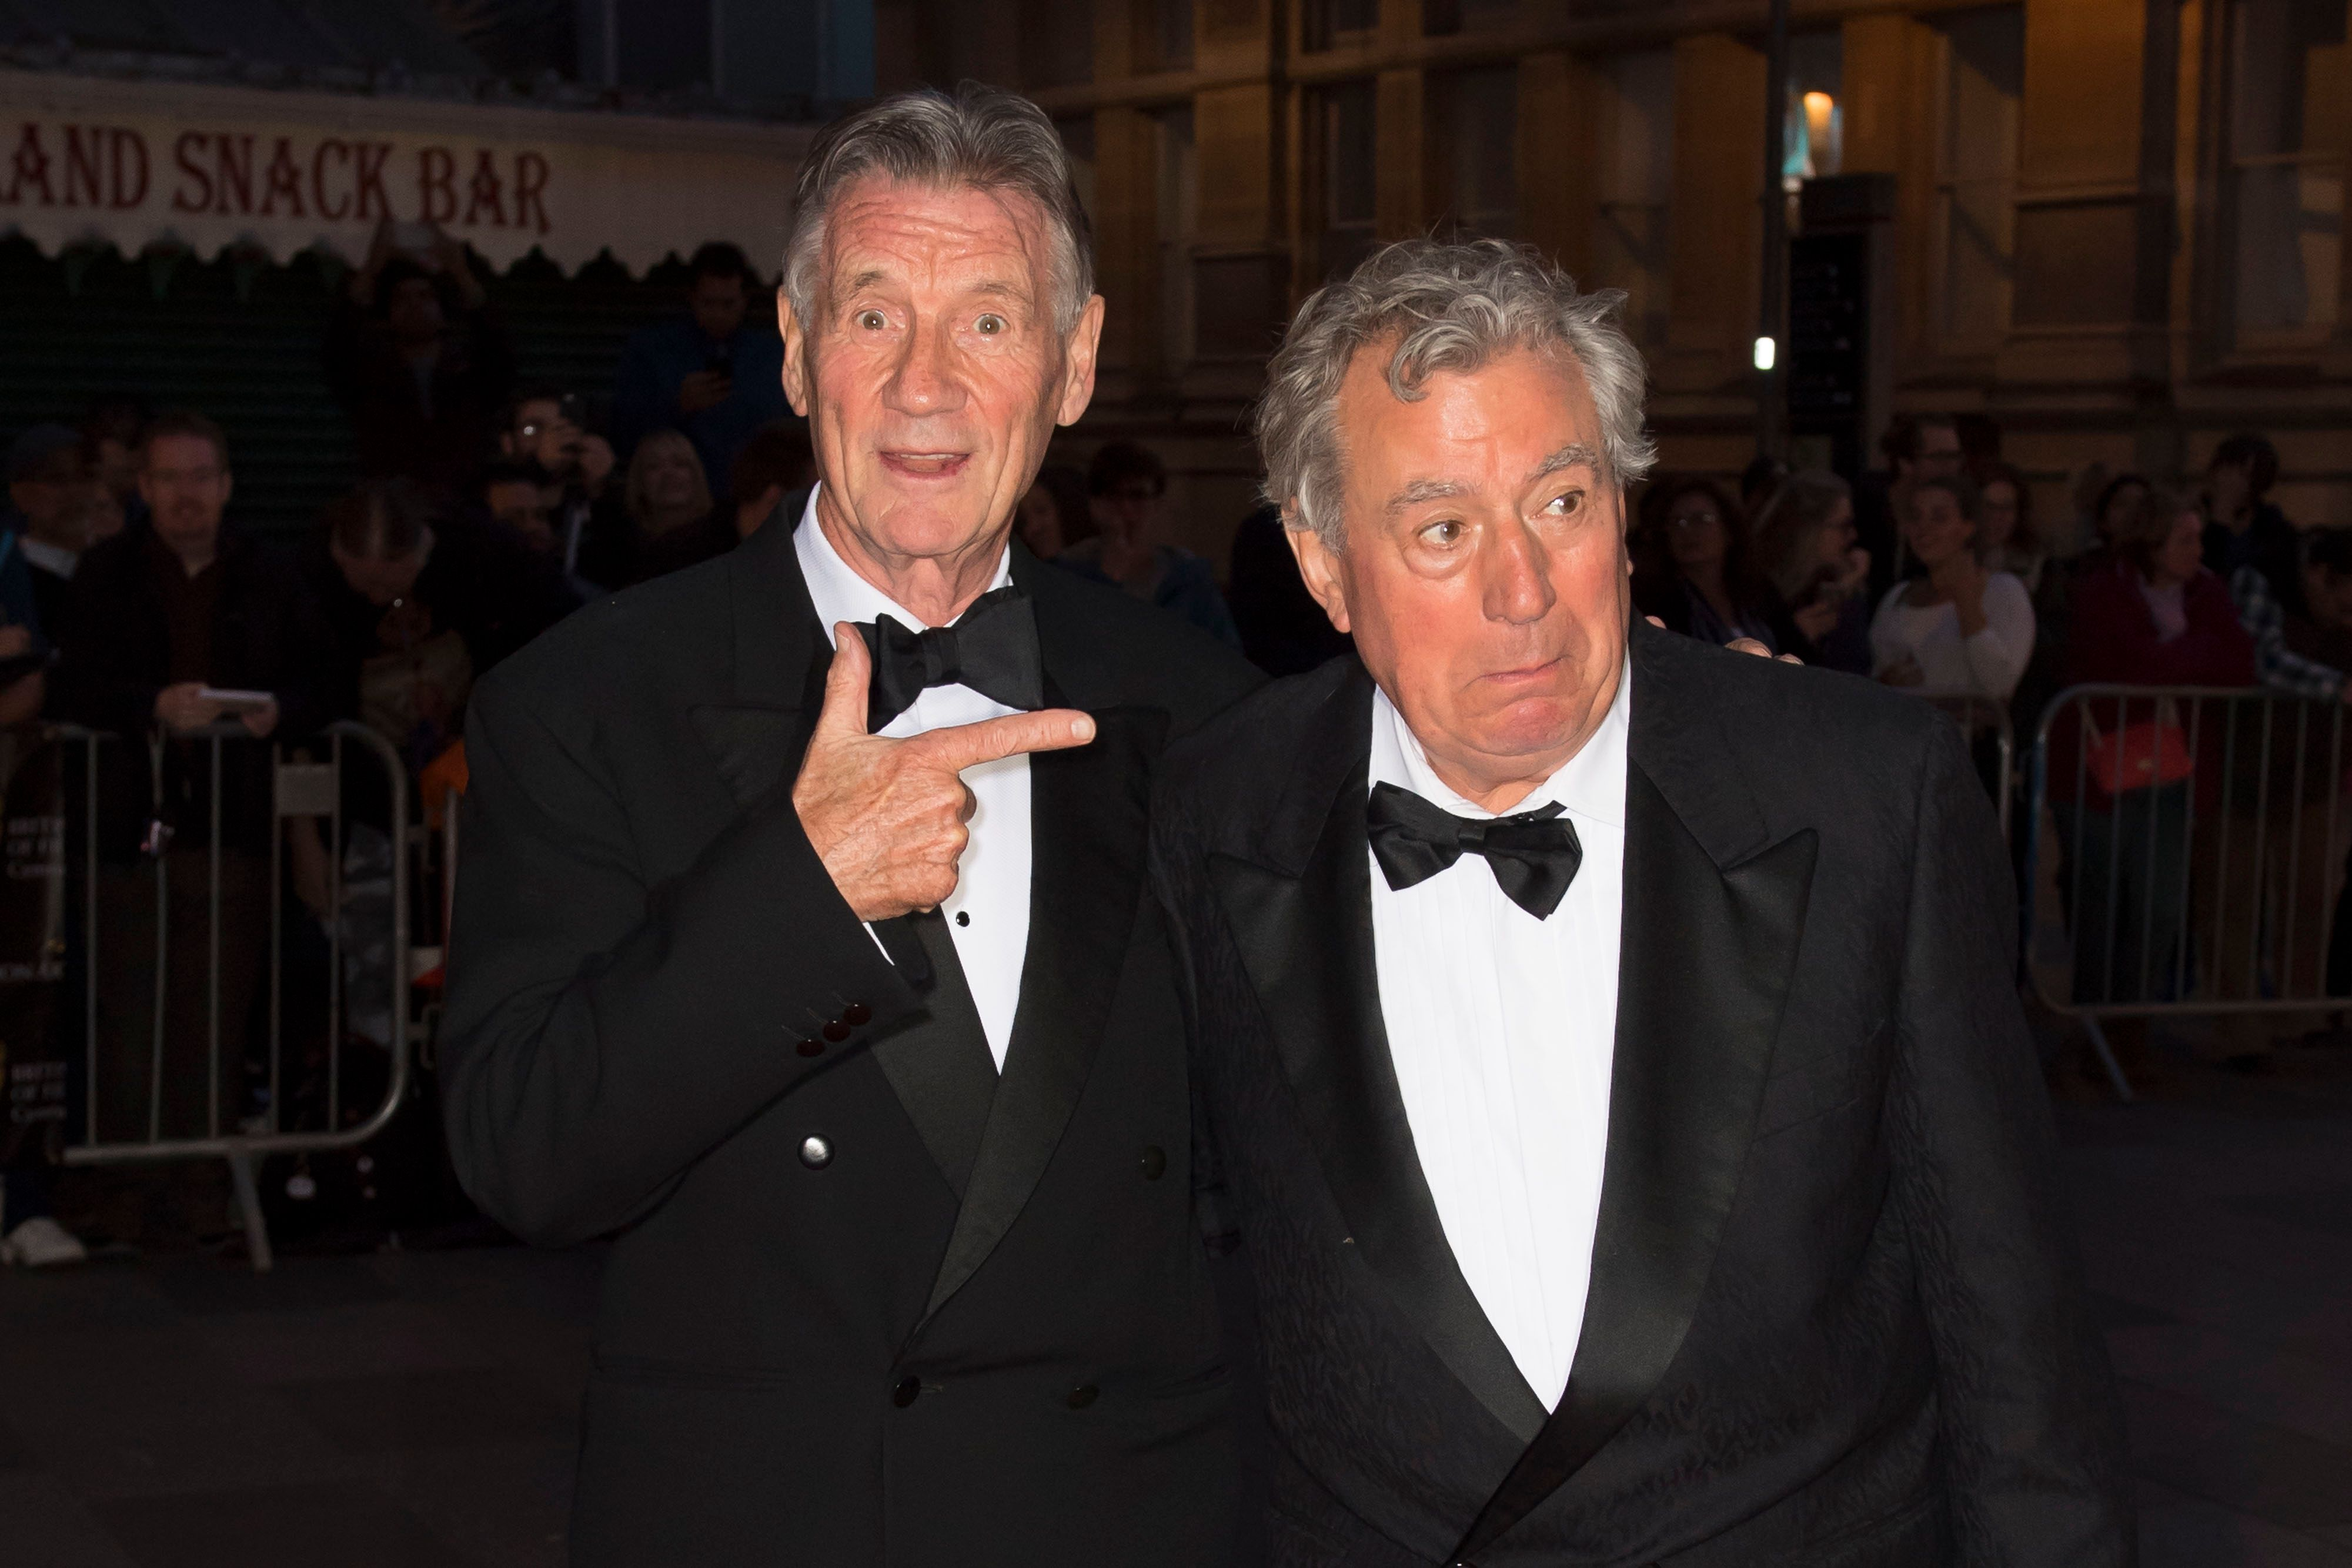 Michael Palin (left) points at Terry Jones (right)